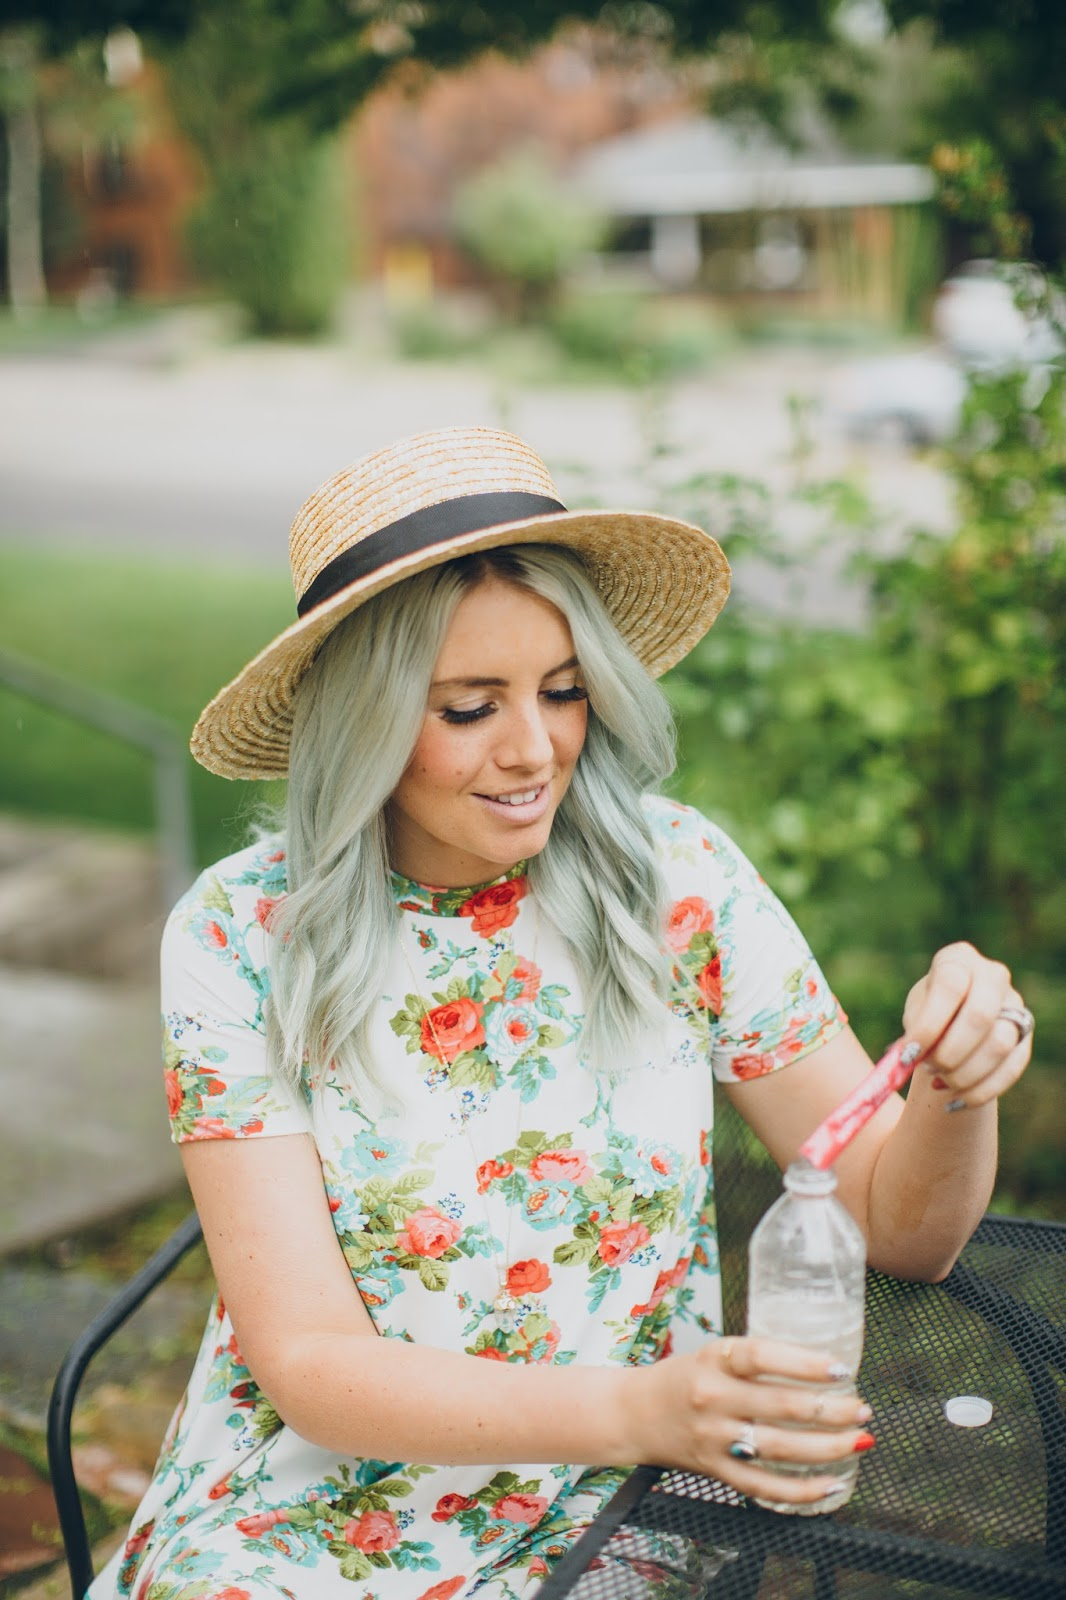 Mint Hair, Floral dress, Vida Glow